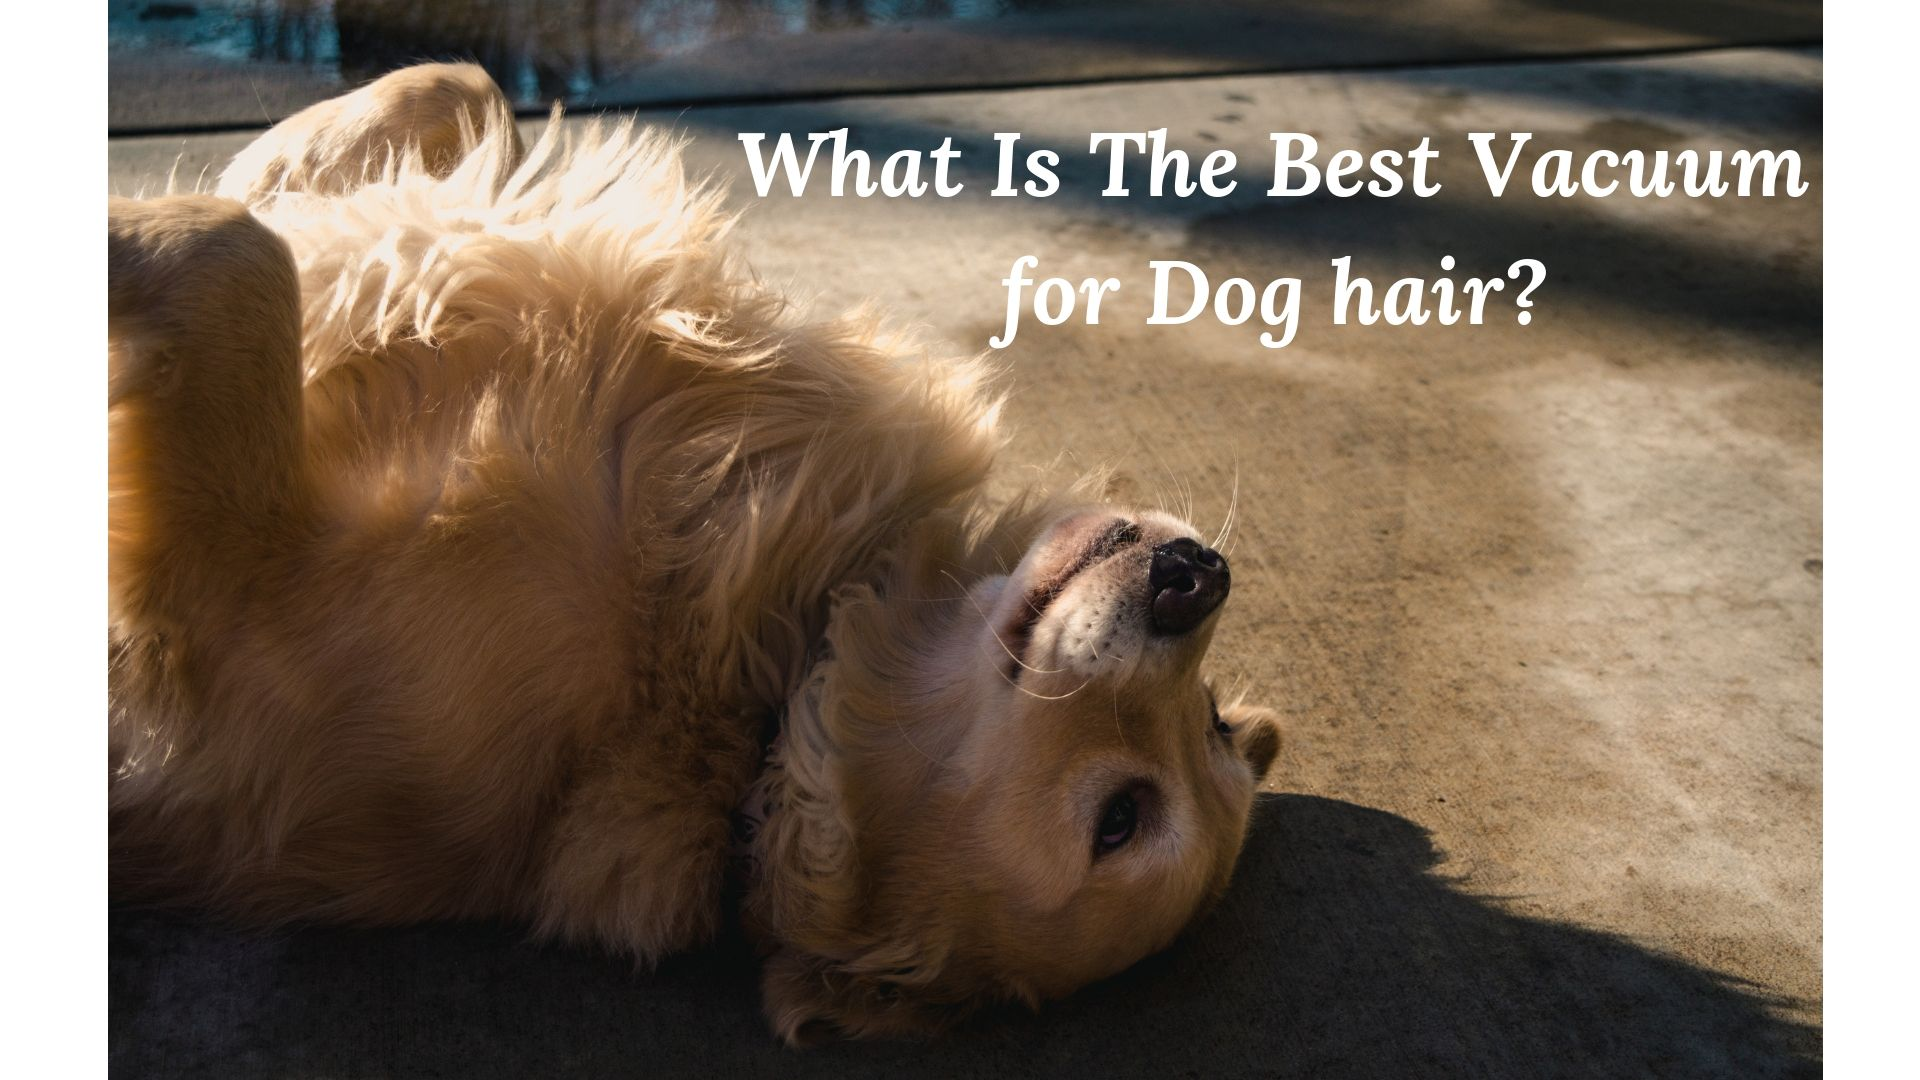 What Is The Best Vacuum for Dog hair?